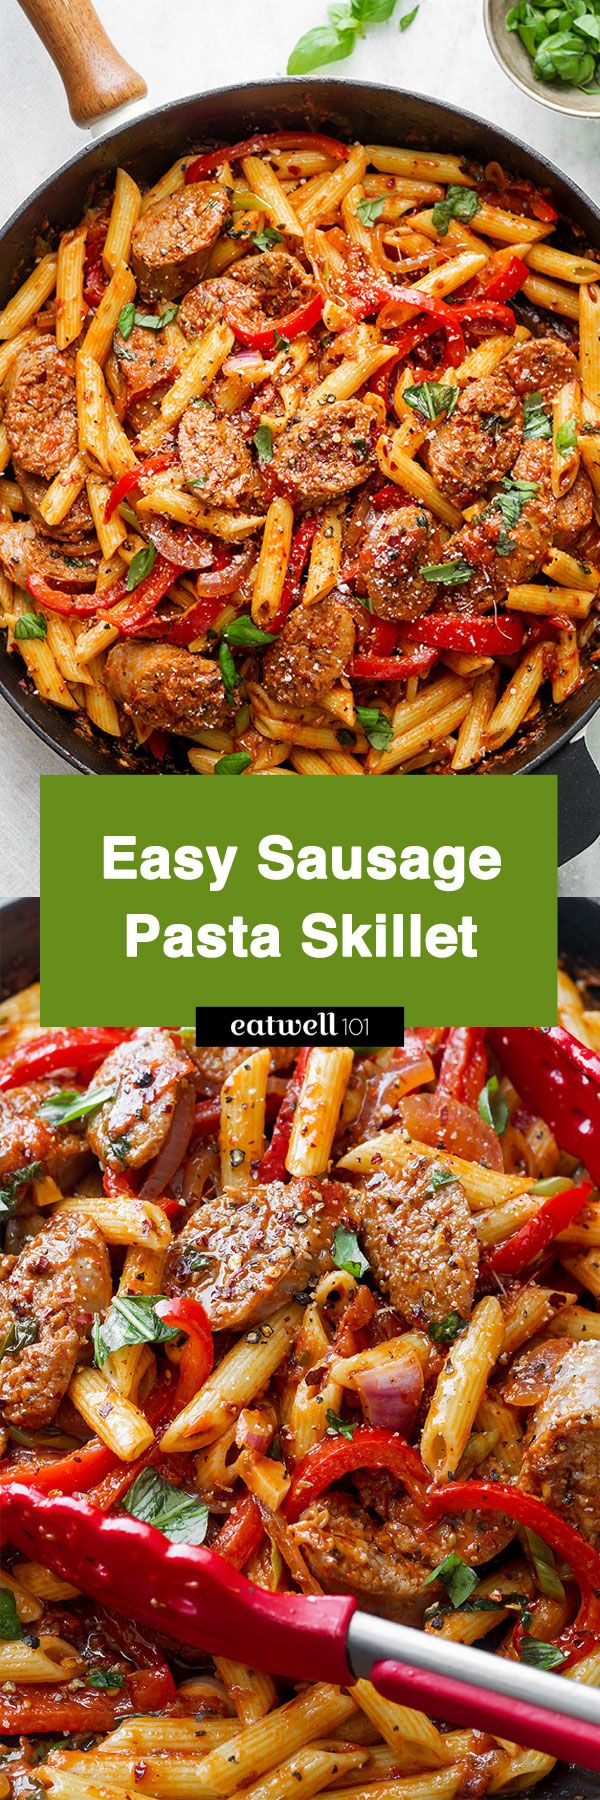 Sausage Pasta Skillet — A quick and easy skillet meal with incredible flavor, perfect for weeknight dinners with family.